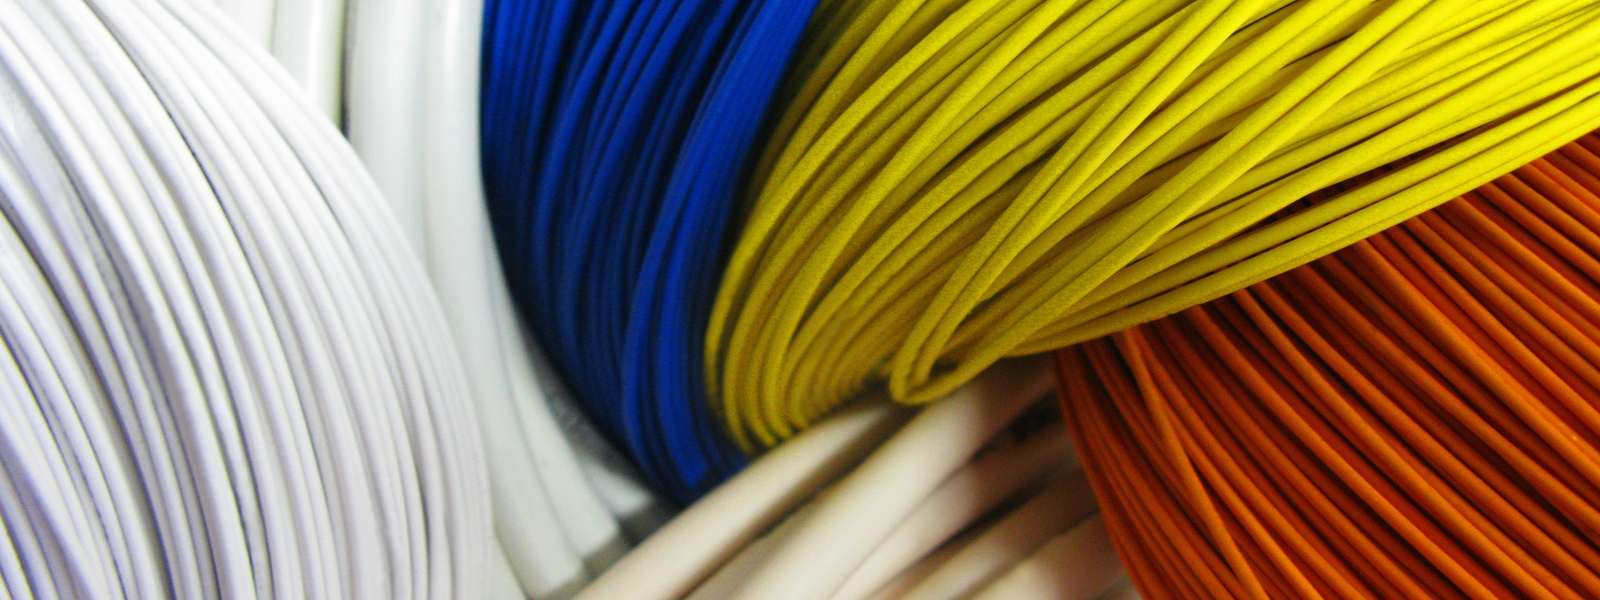 Image of various flexible cable coils